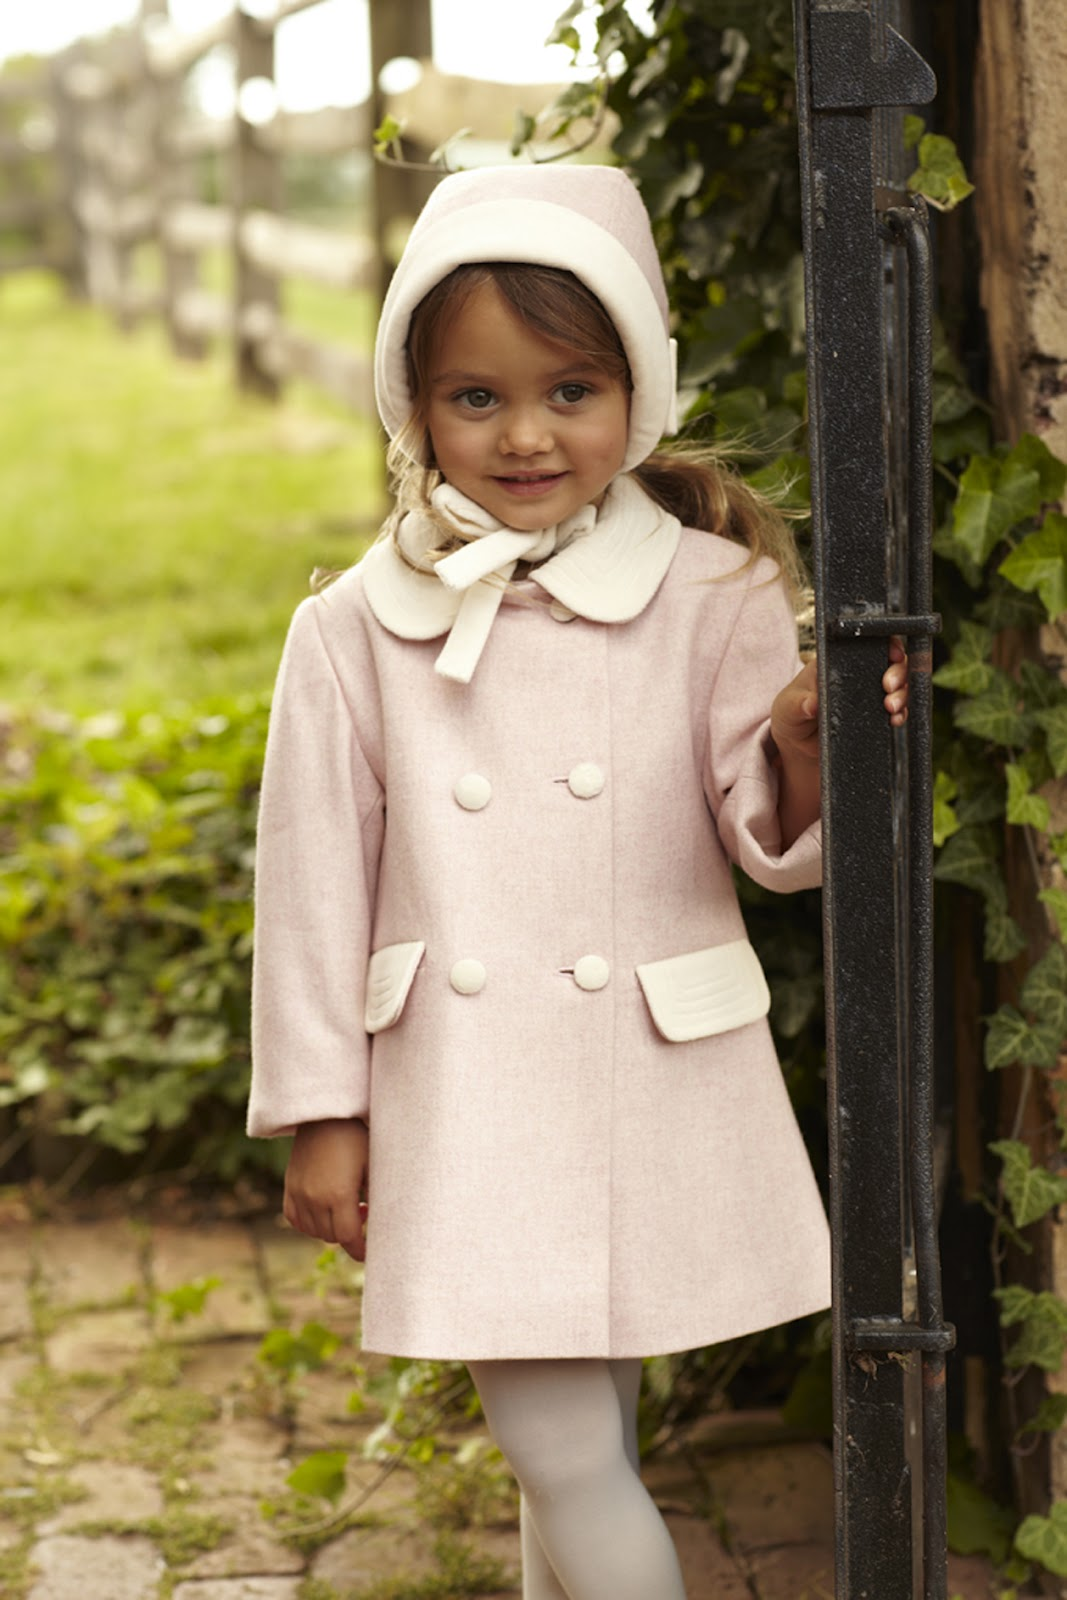 Stylish kids oscar de la renta kids fall 2012 collection for Oscar de la renta childhood